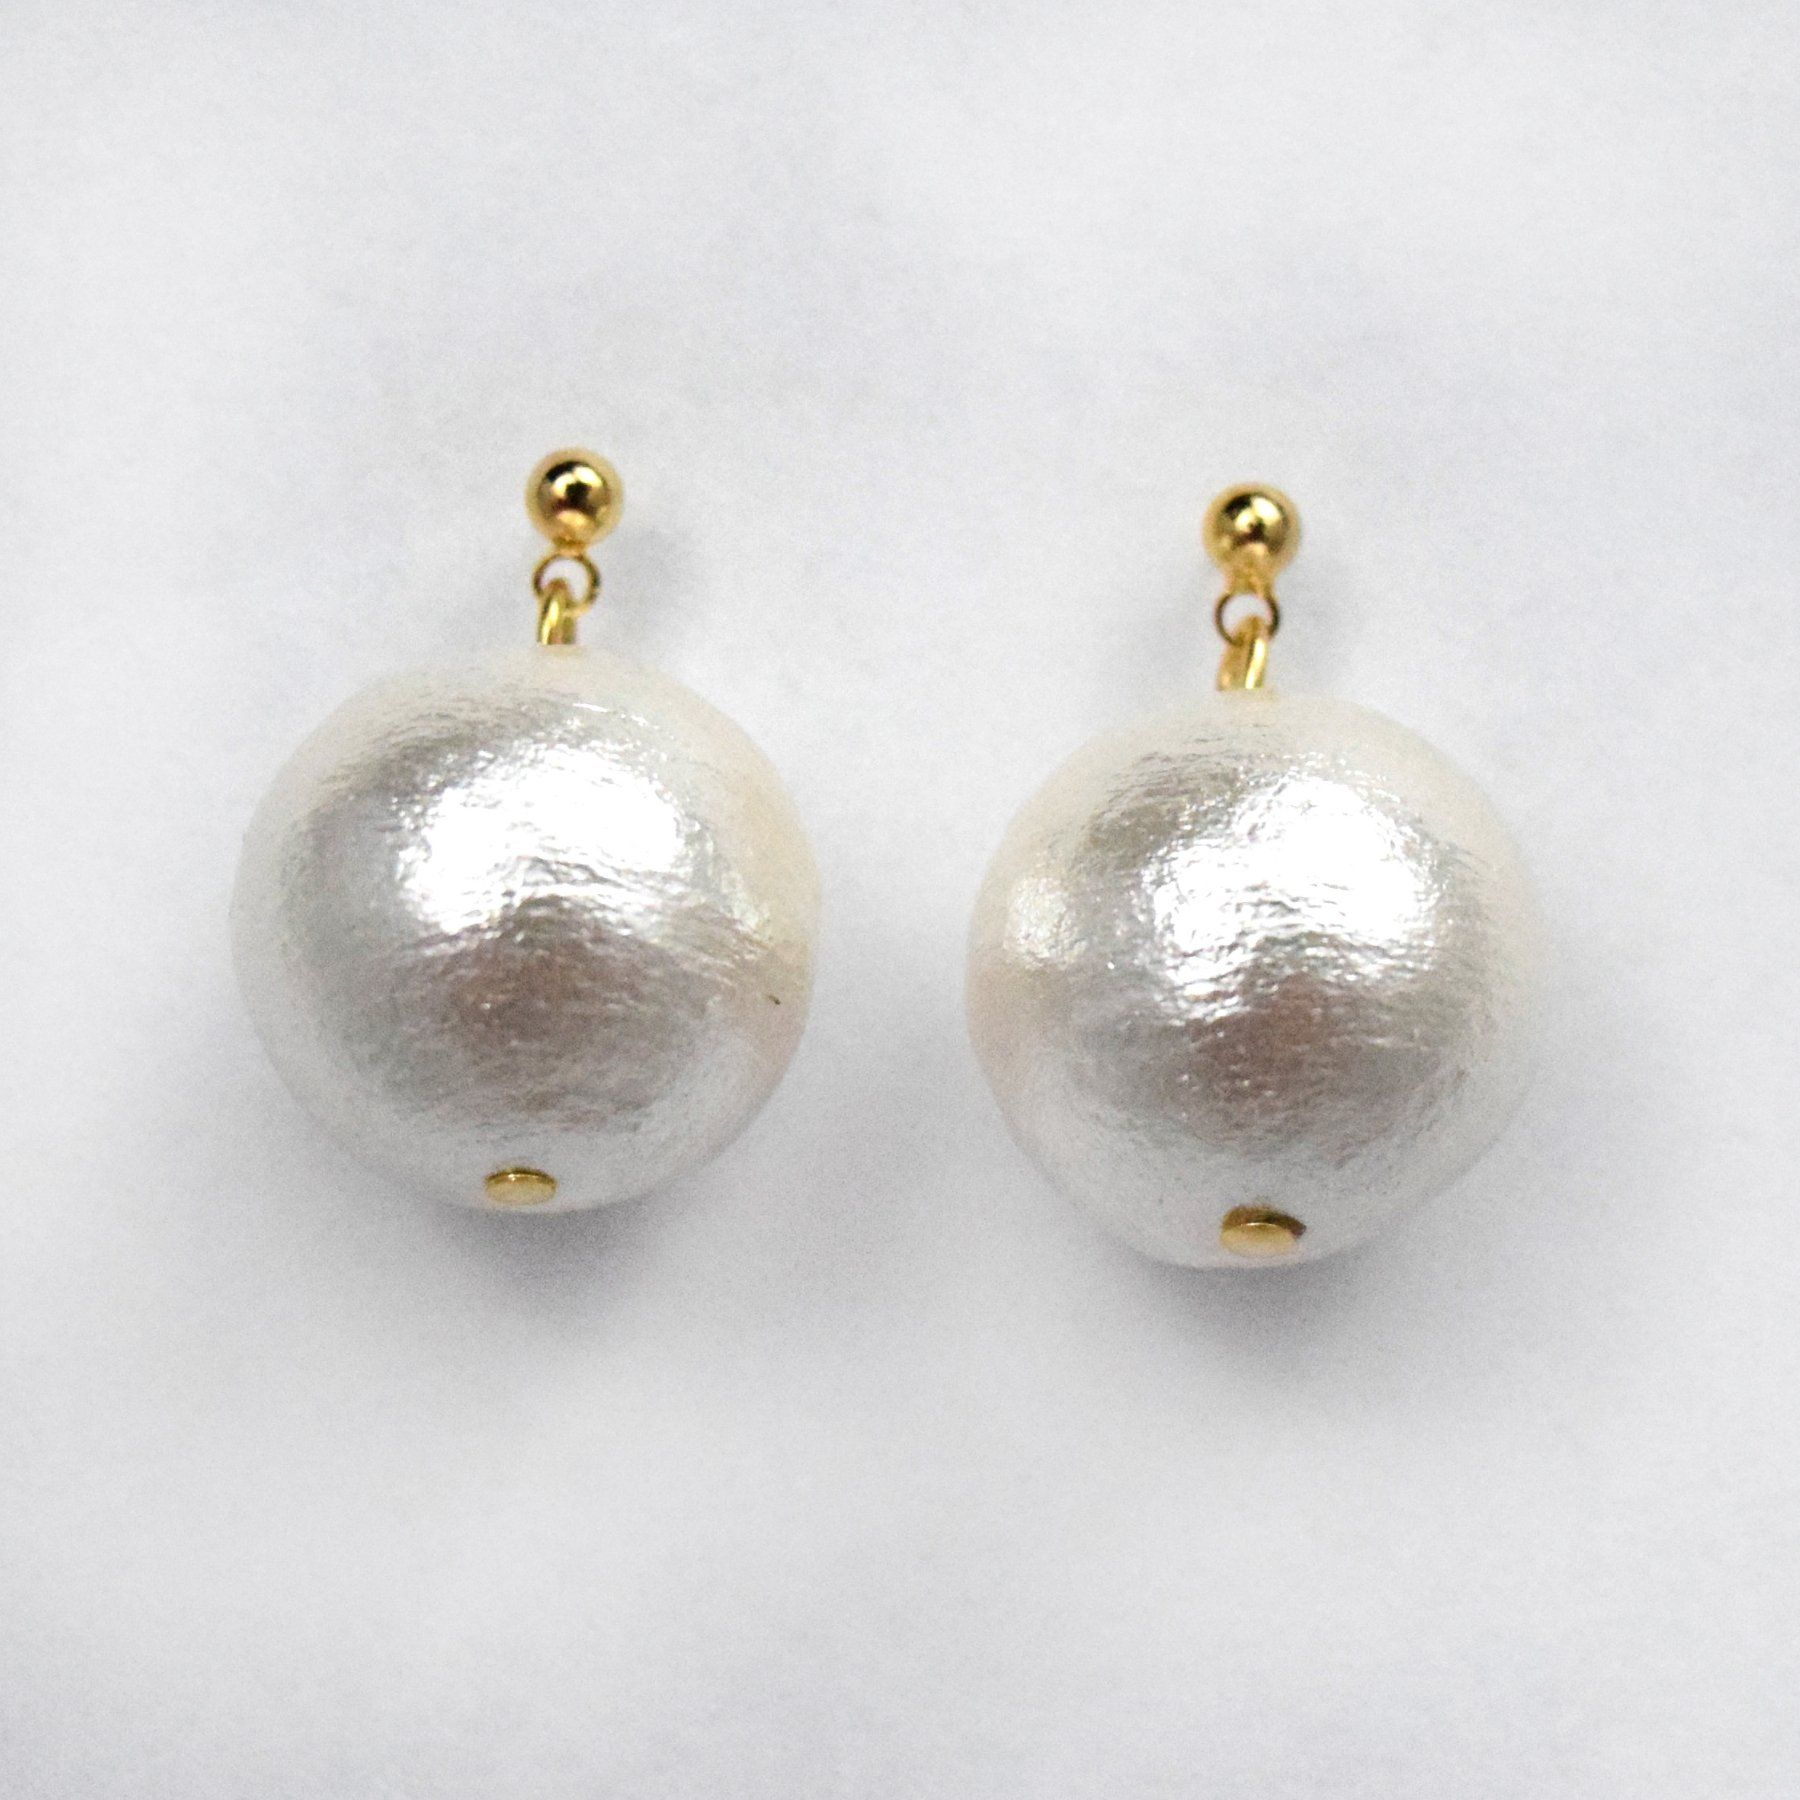 closeup of shiny oversized pearl earrings. Gold studs and short links with pearl.